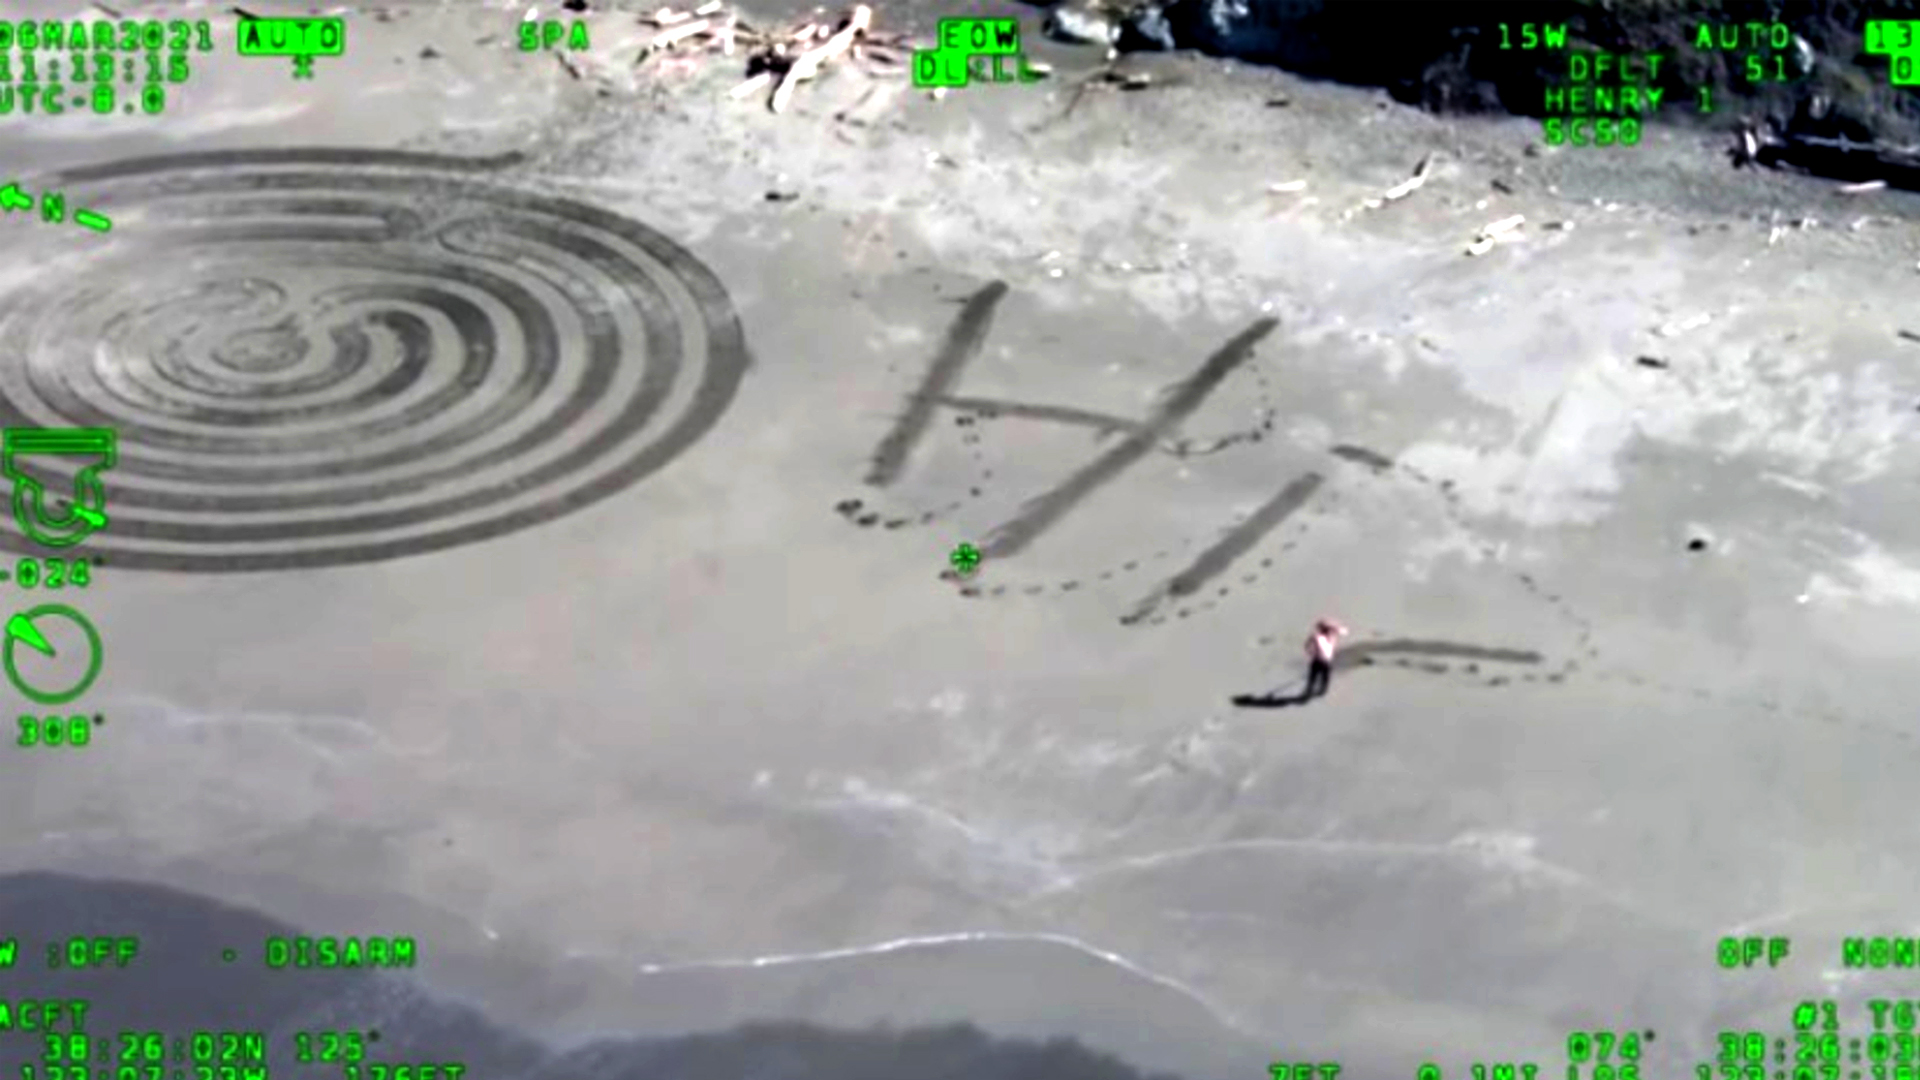 Sonoma Sheriff Helicopter Crew Greeted By Lovely Message Man Writes Out In Sand